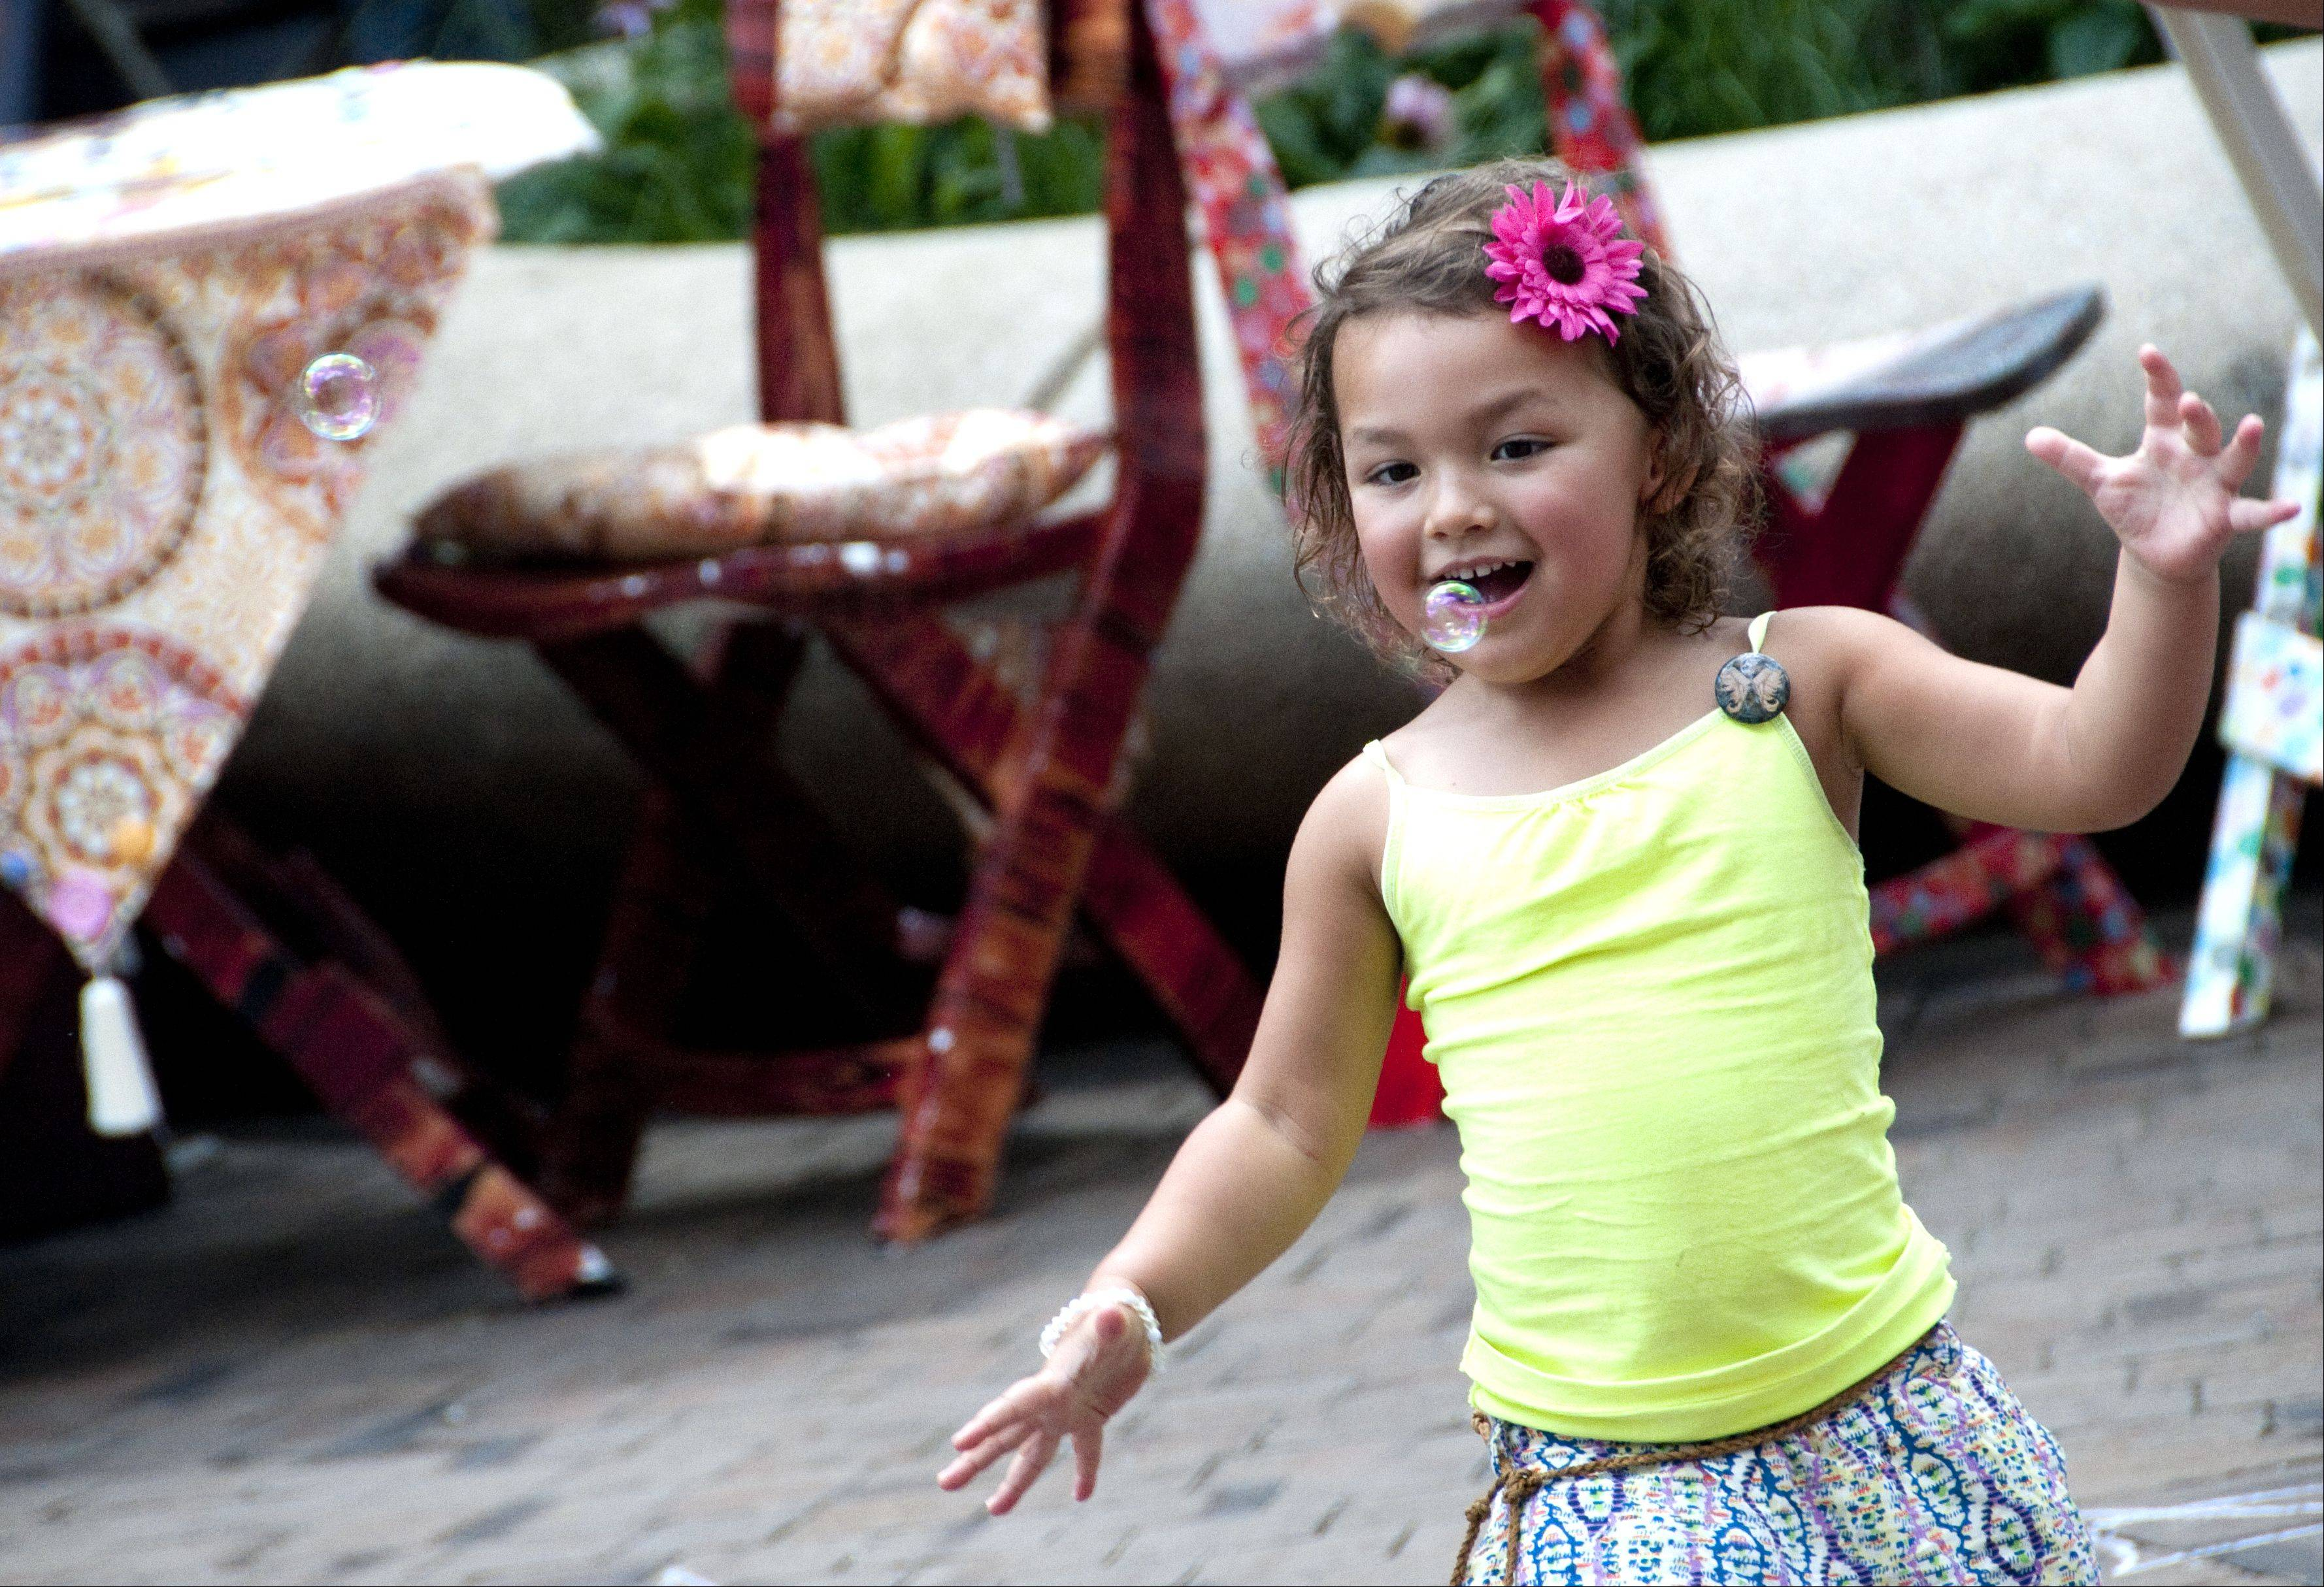 Leyla Garcia, 3, of Pingree Grove, chases bubbles in the food court on Saturday at the Art & Soul on the Fox festival in downtown Elgin. The festival features artists working with a variety of mediums including ceramics, glass, metal, photography, watercolors, wood and more.